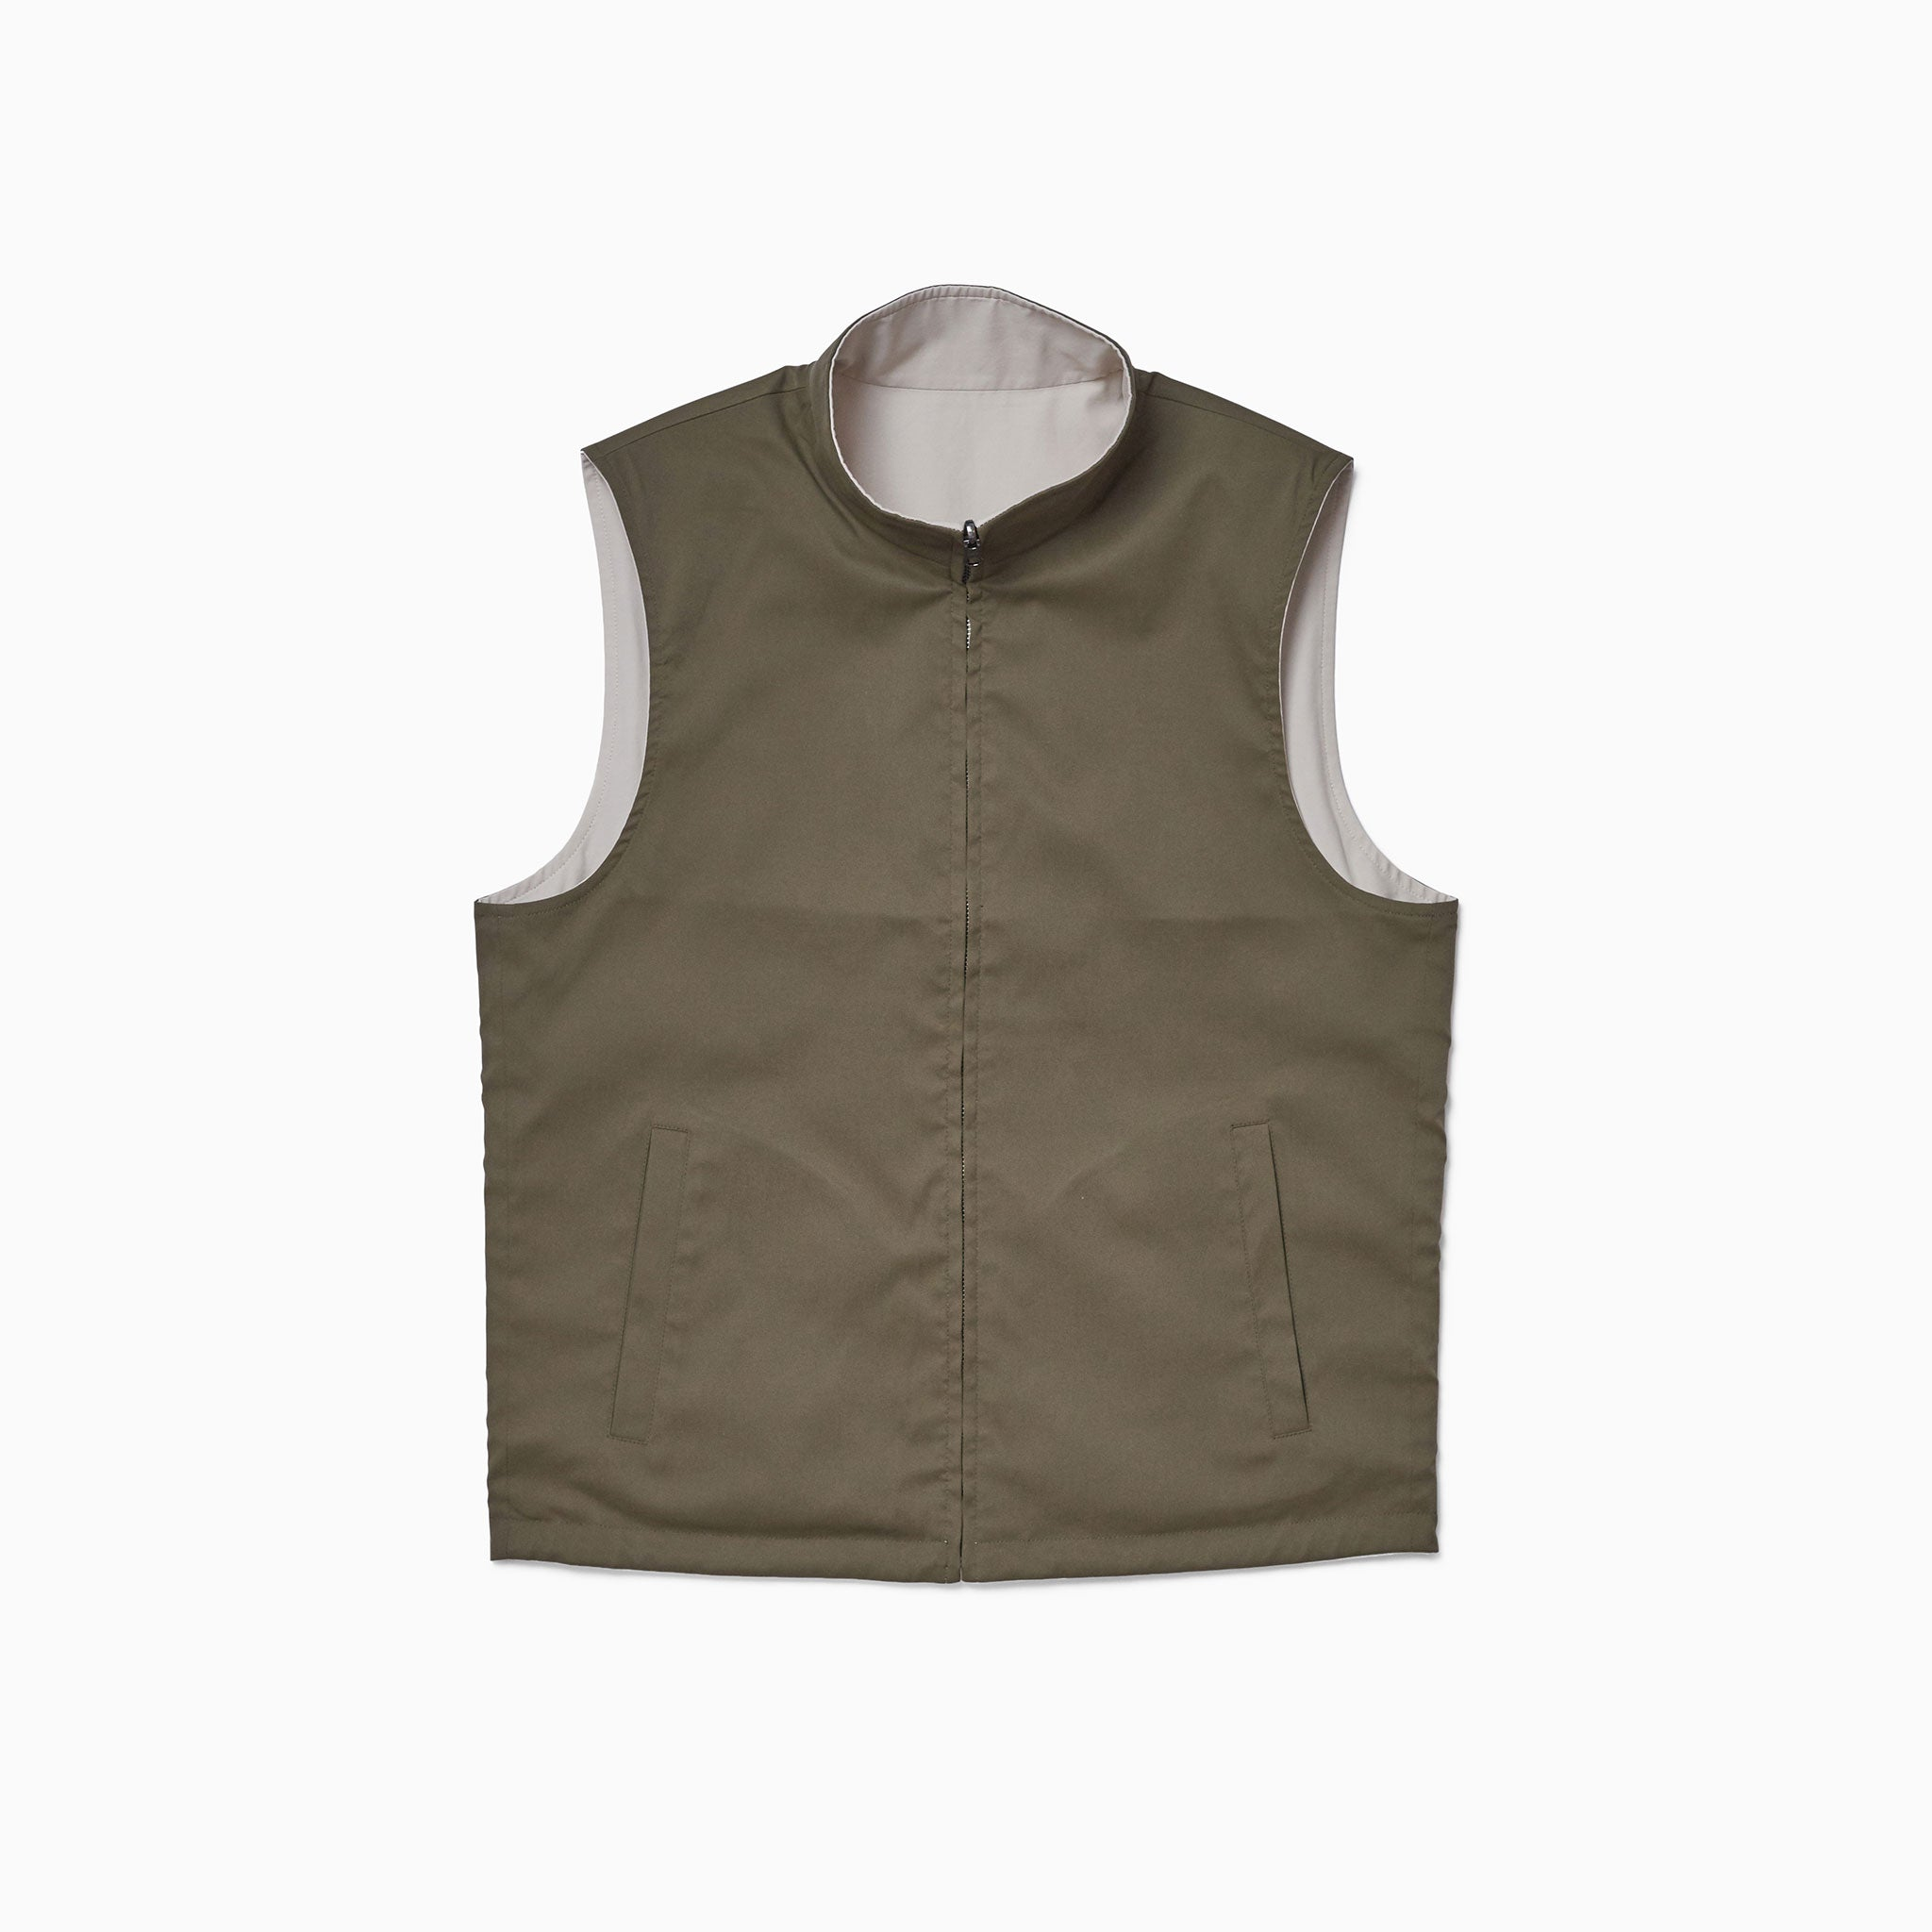 Off White / Khaki Reversible Gilet